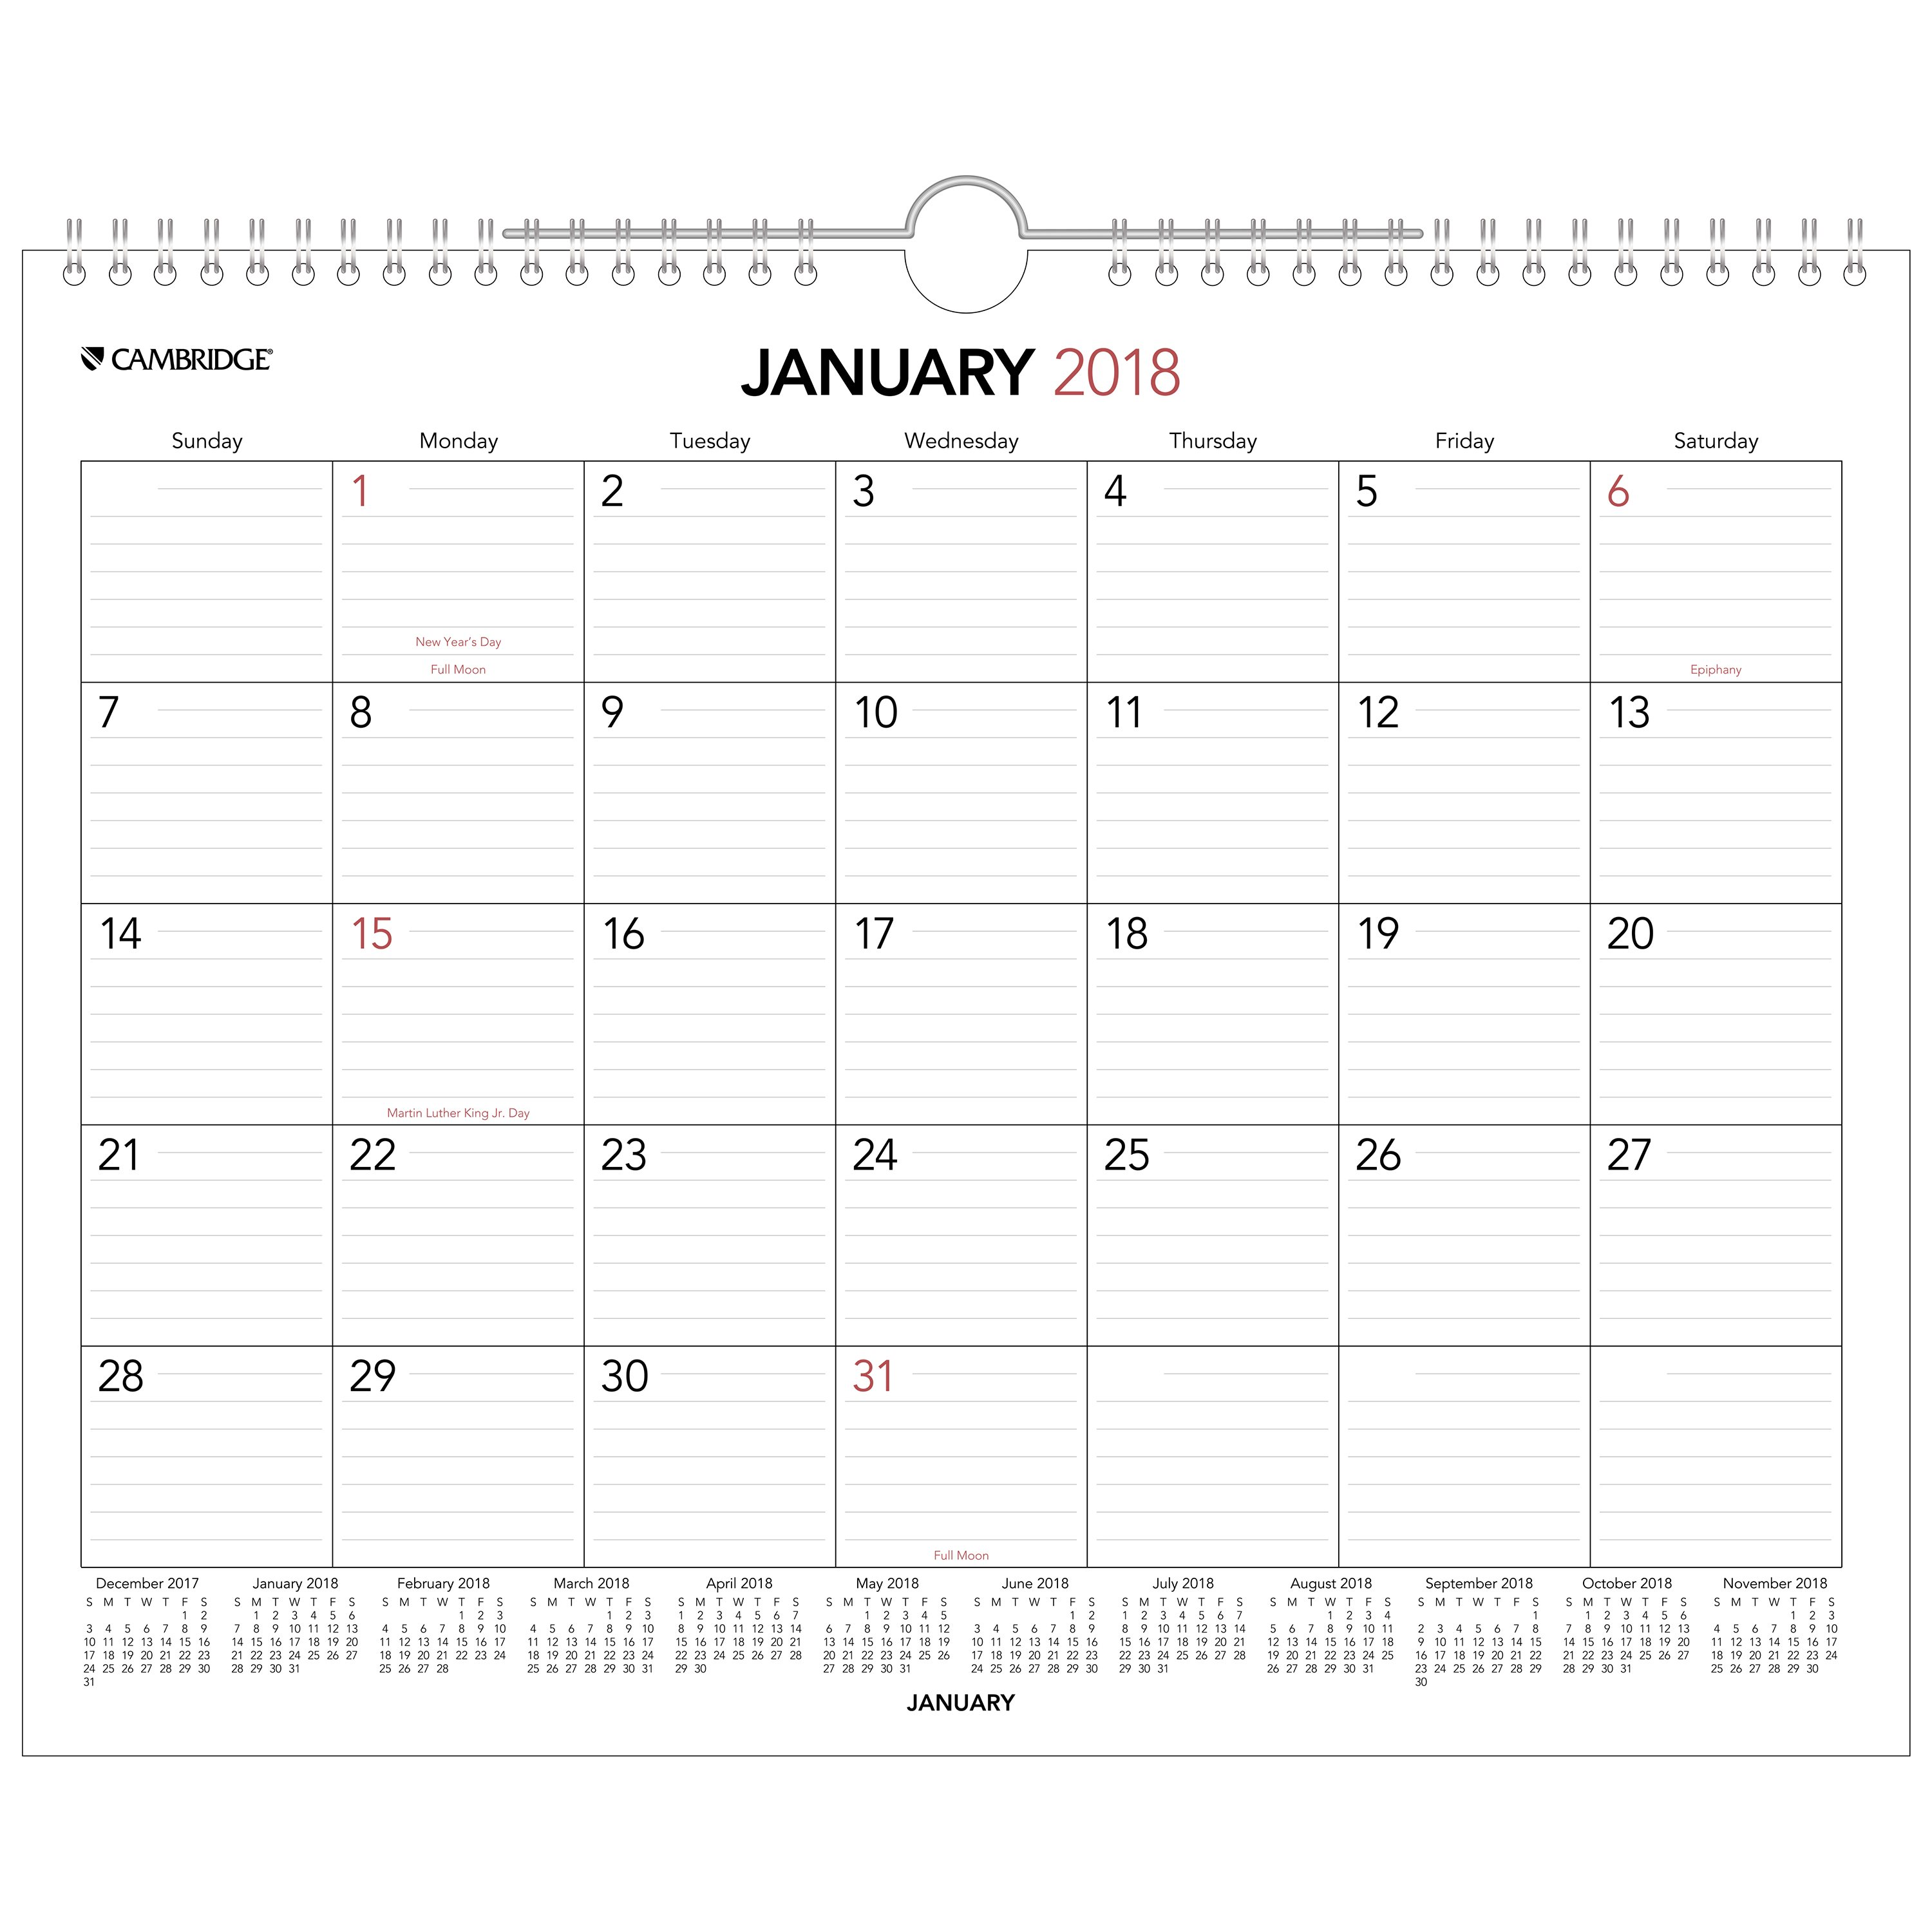 "Click here to buy 2018 Mead Cambridge Monthly Wall Calendar, 12 Months, January Start, 14 7 8"" x 11 7 8\ by ACCO BRANDS."